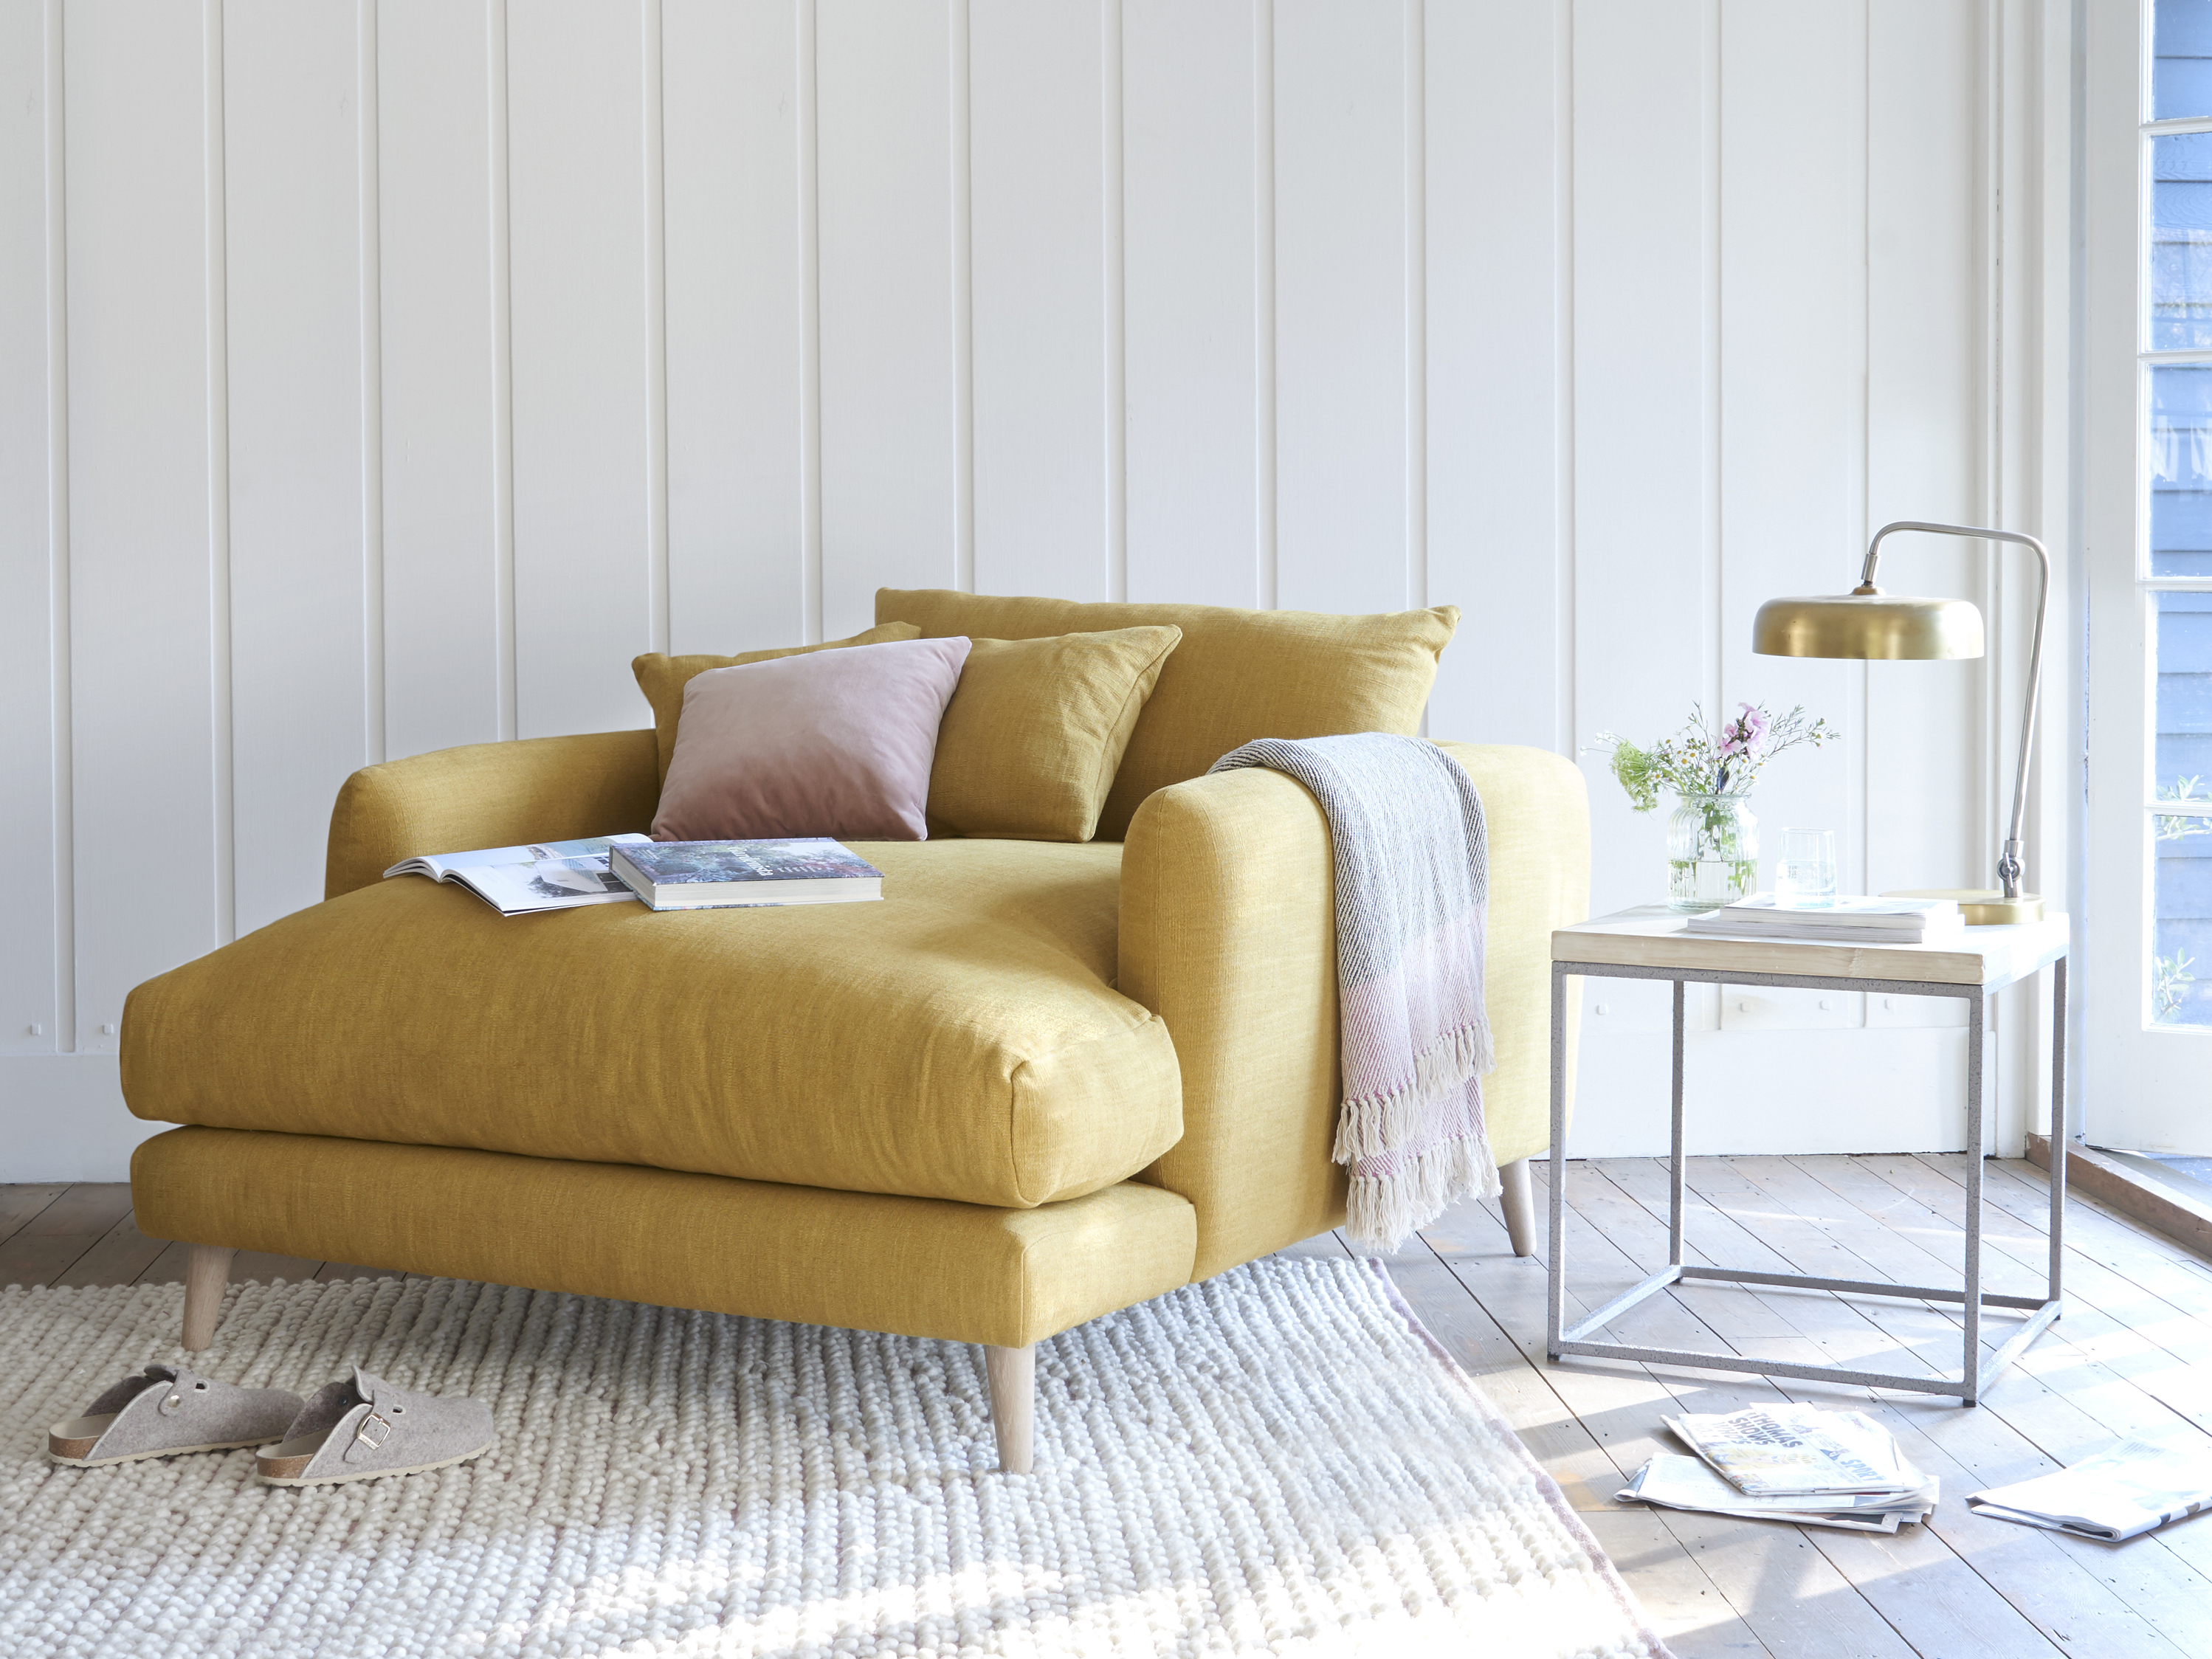 Squishmeister Love Seat Chaise, in Thatch House Fabric, Mellow Yellow, £1,145, Loaf (Loaf/PA)